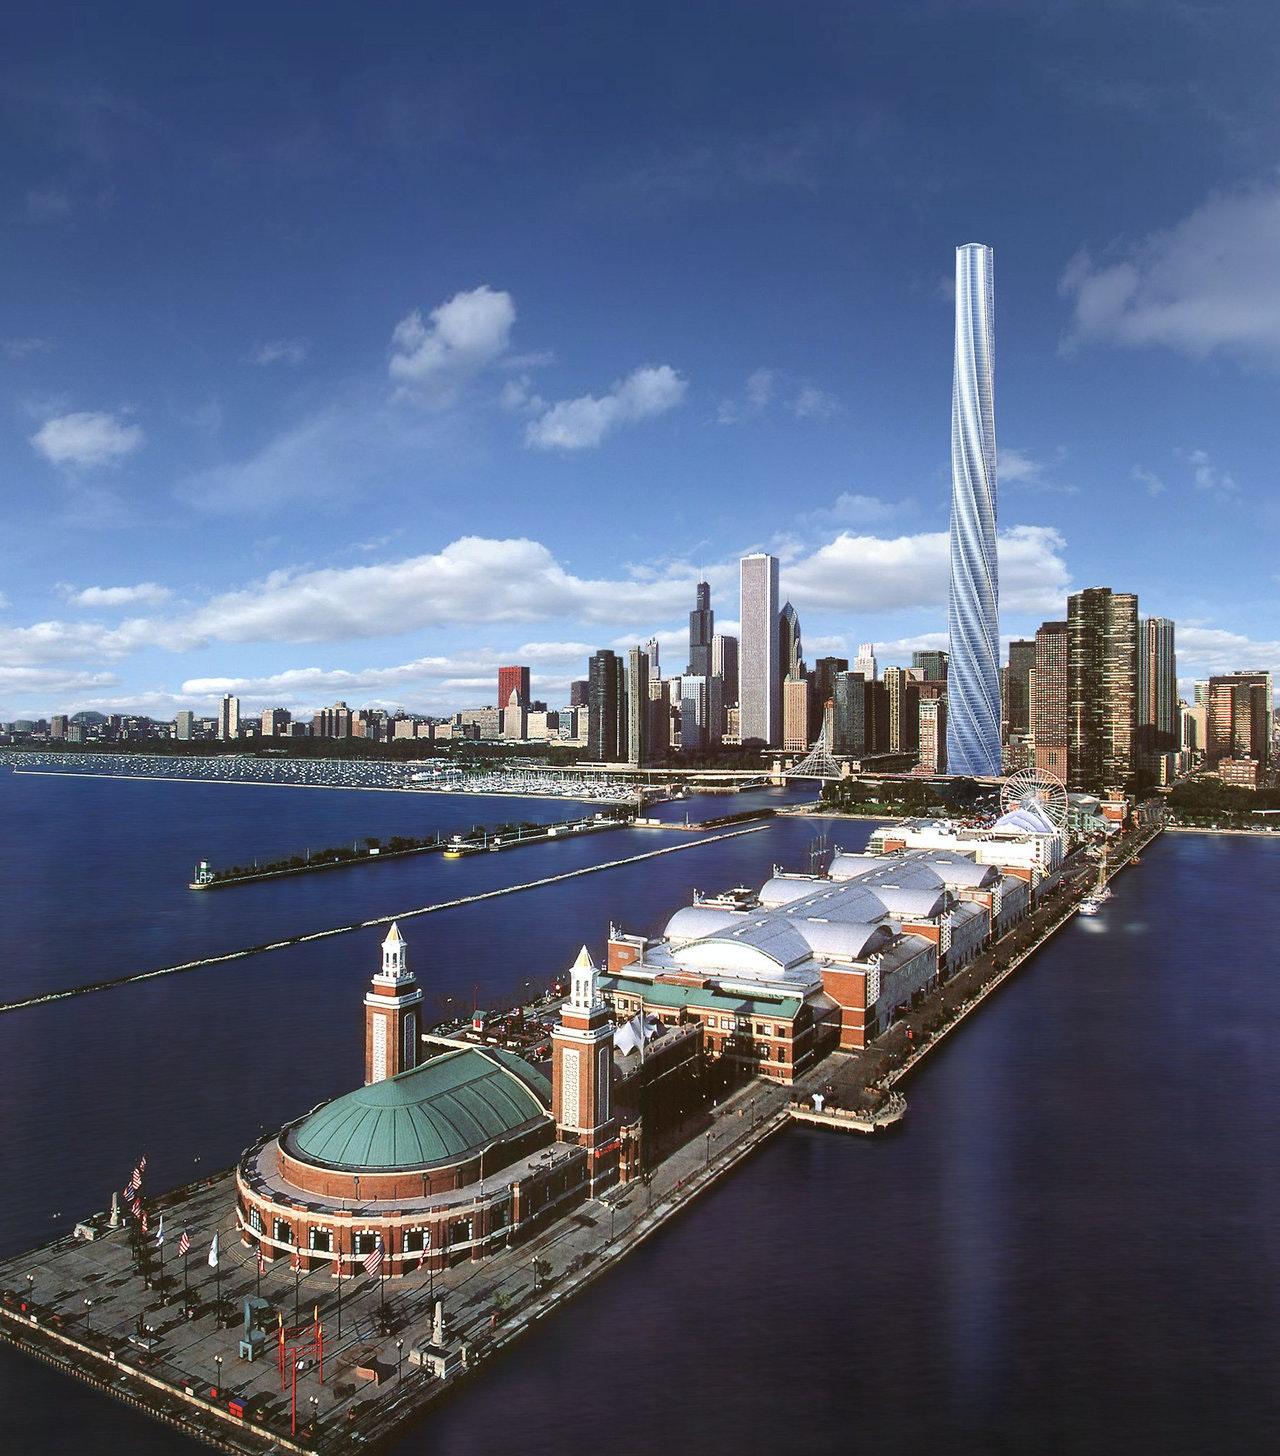 elementary teacher resume%0A The Irish developer behind the Chicago Spire said it has found an investor  to pay its creditors  allowing it to emerge from bankruptcy and possibly  restart